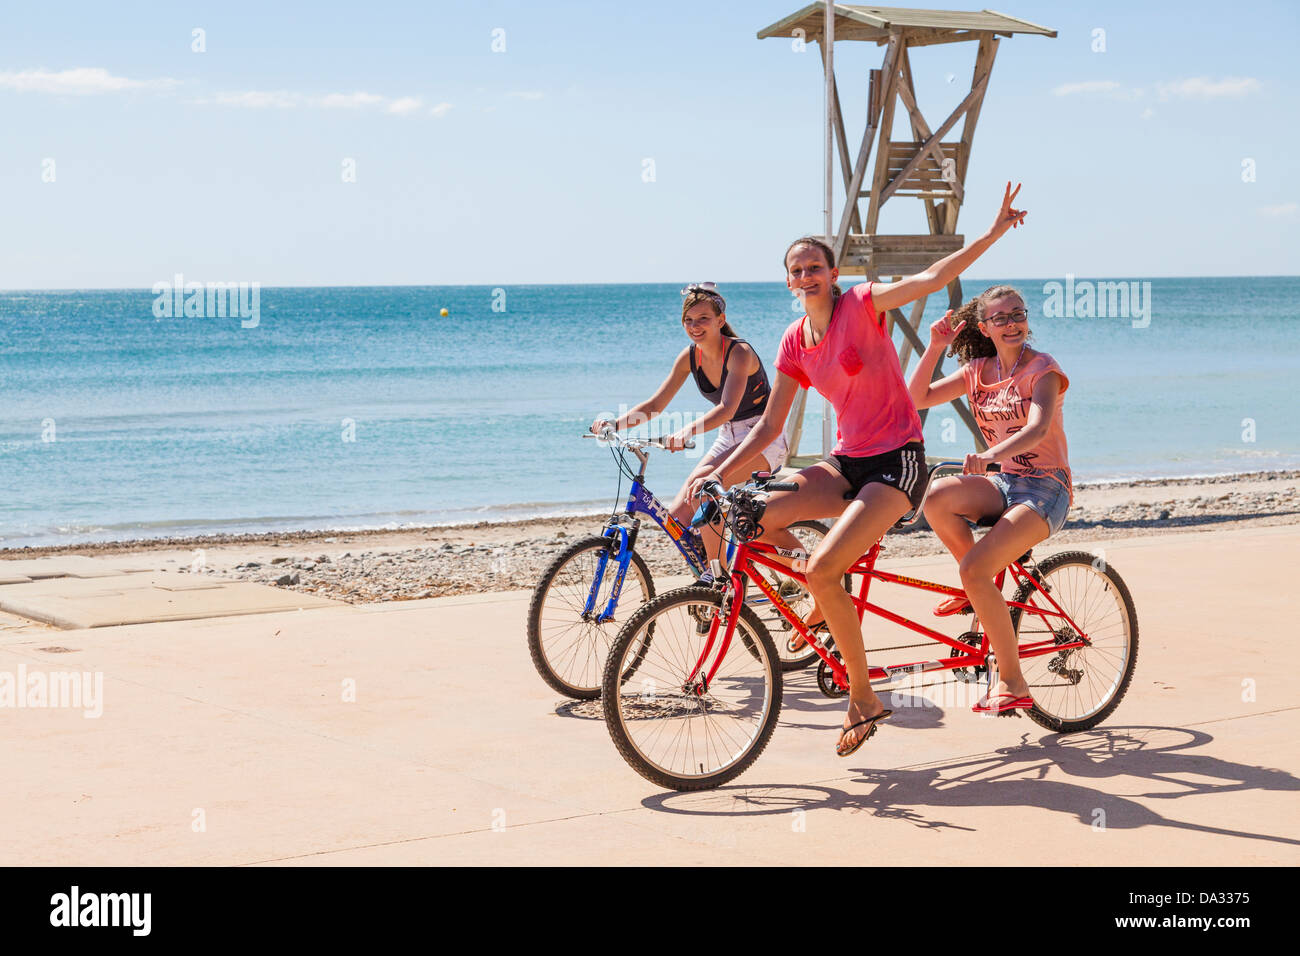 teenage girls riding tandem bicycle by seaside - Stock Image